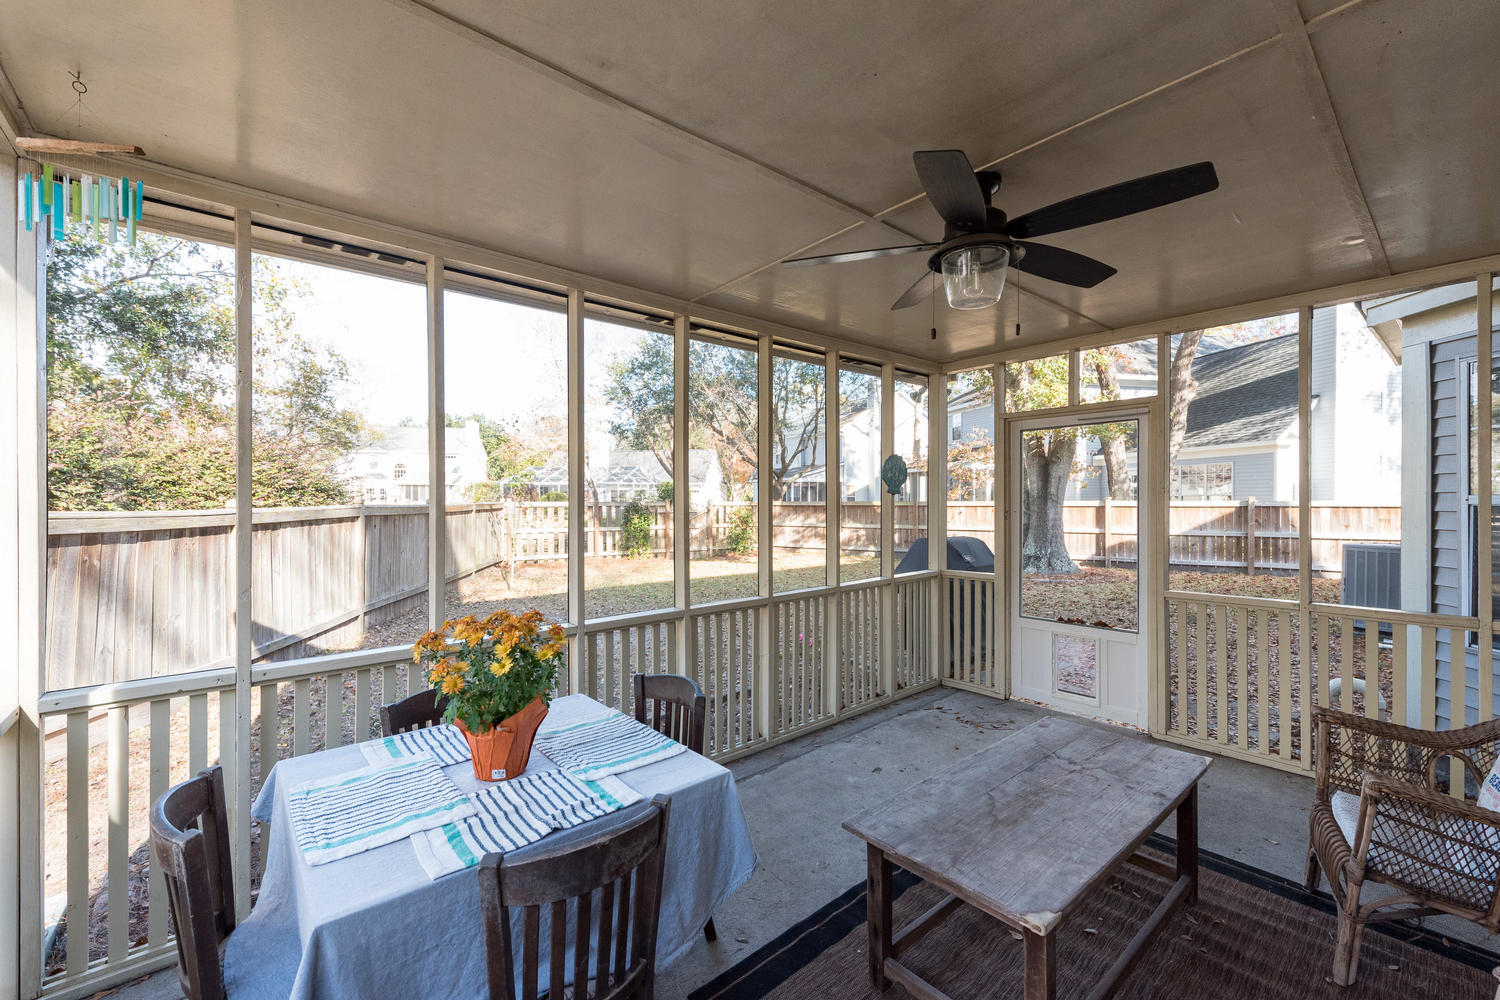 Home for sale 1337 Horseshoe Bend, Sweetgrass, Mt. Pleasant, SC